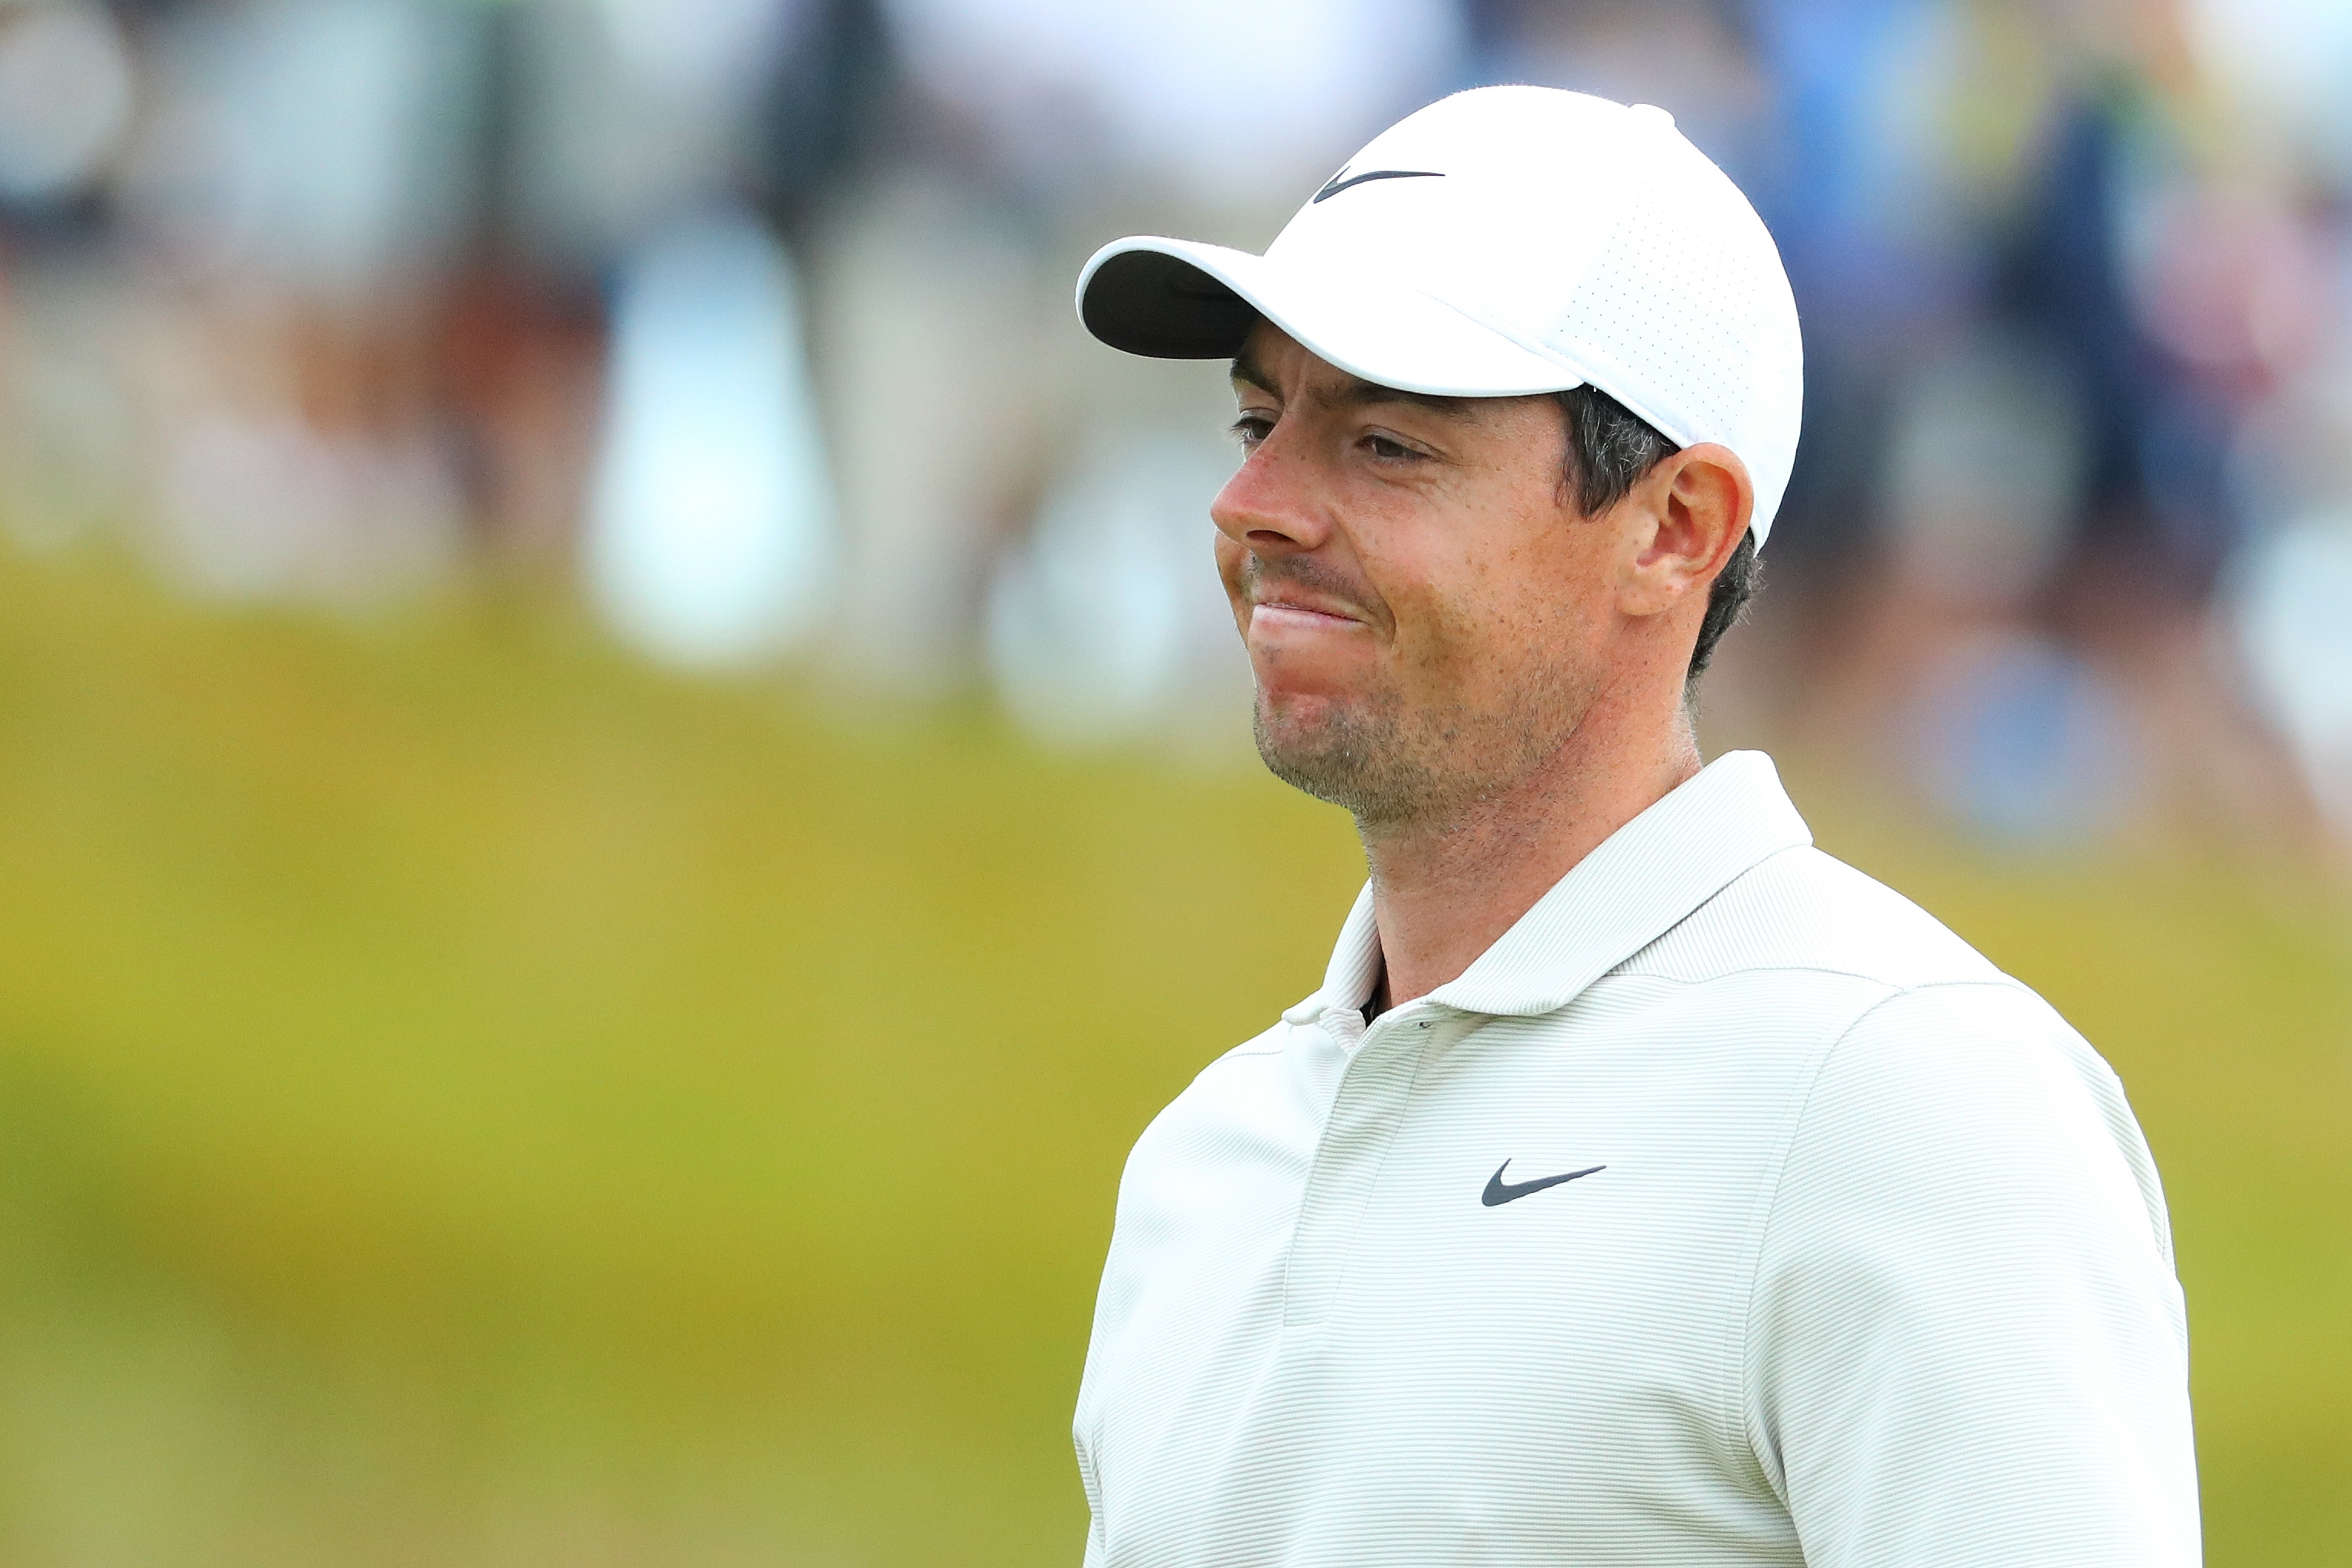 McIlroy needs a new attitude, says McGinley